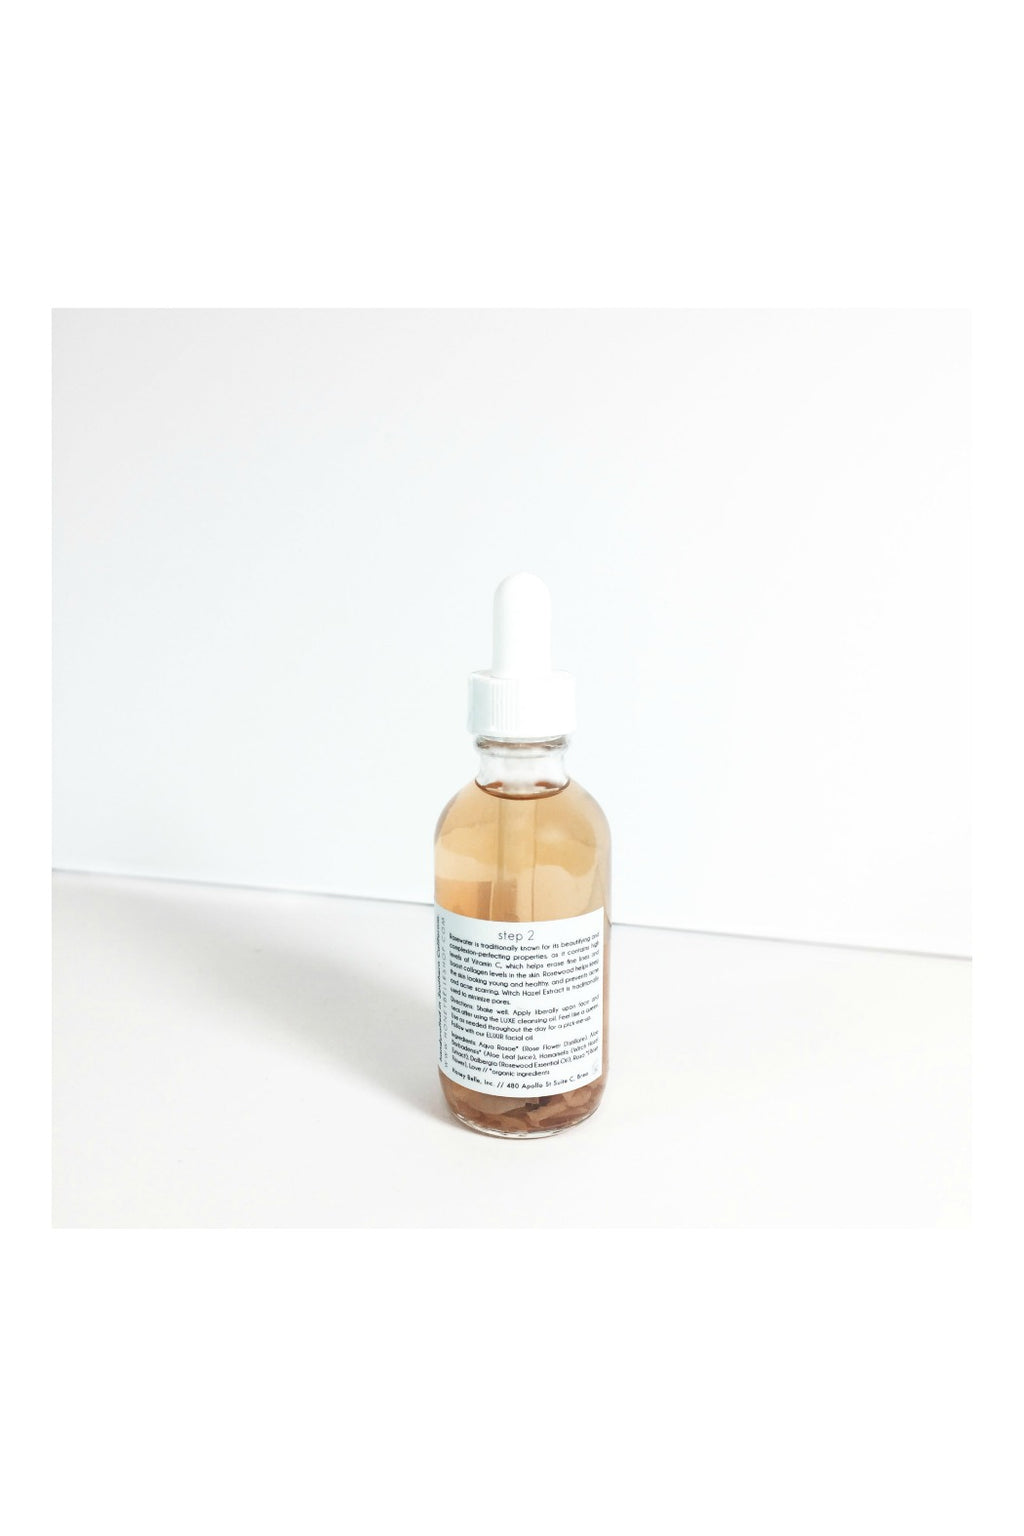 Honey Belle Organic Toner 15m - Rosewater